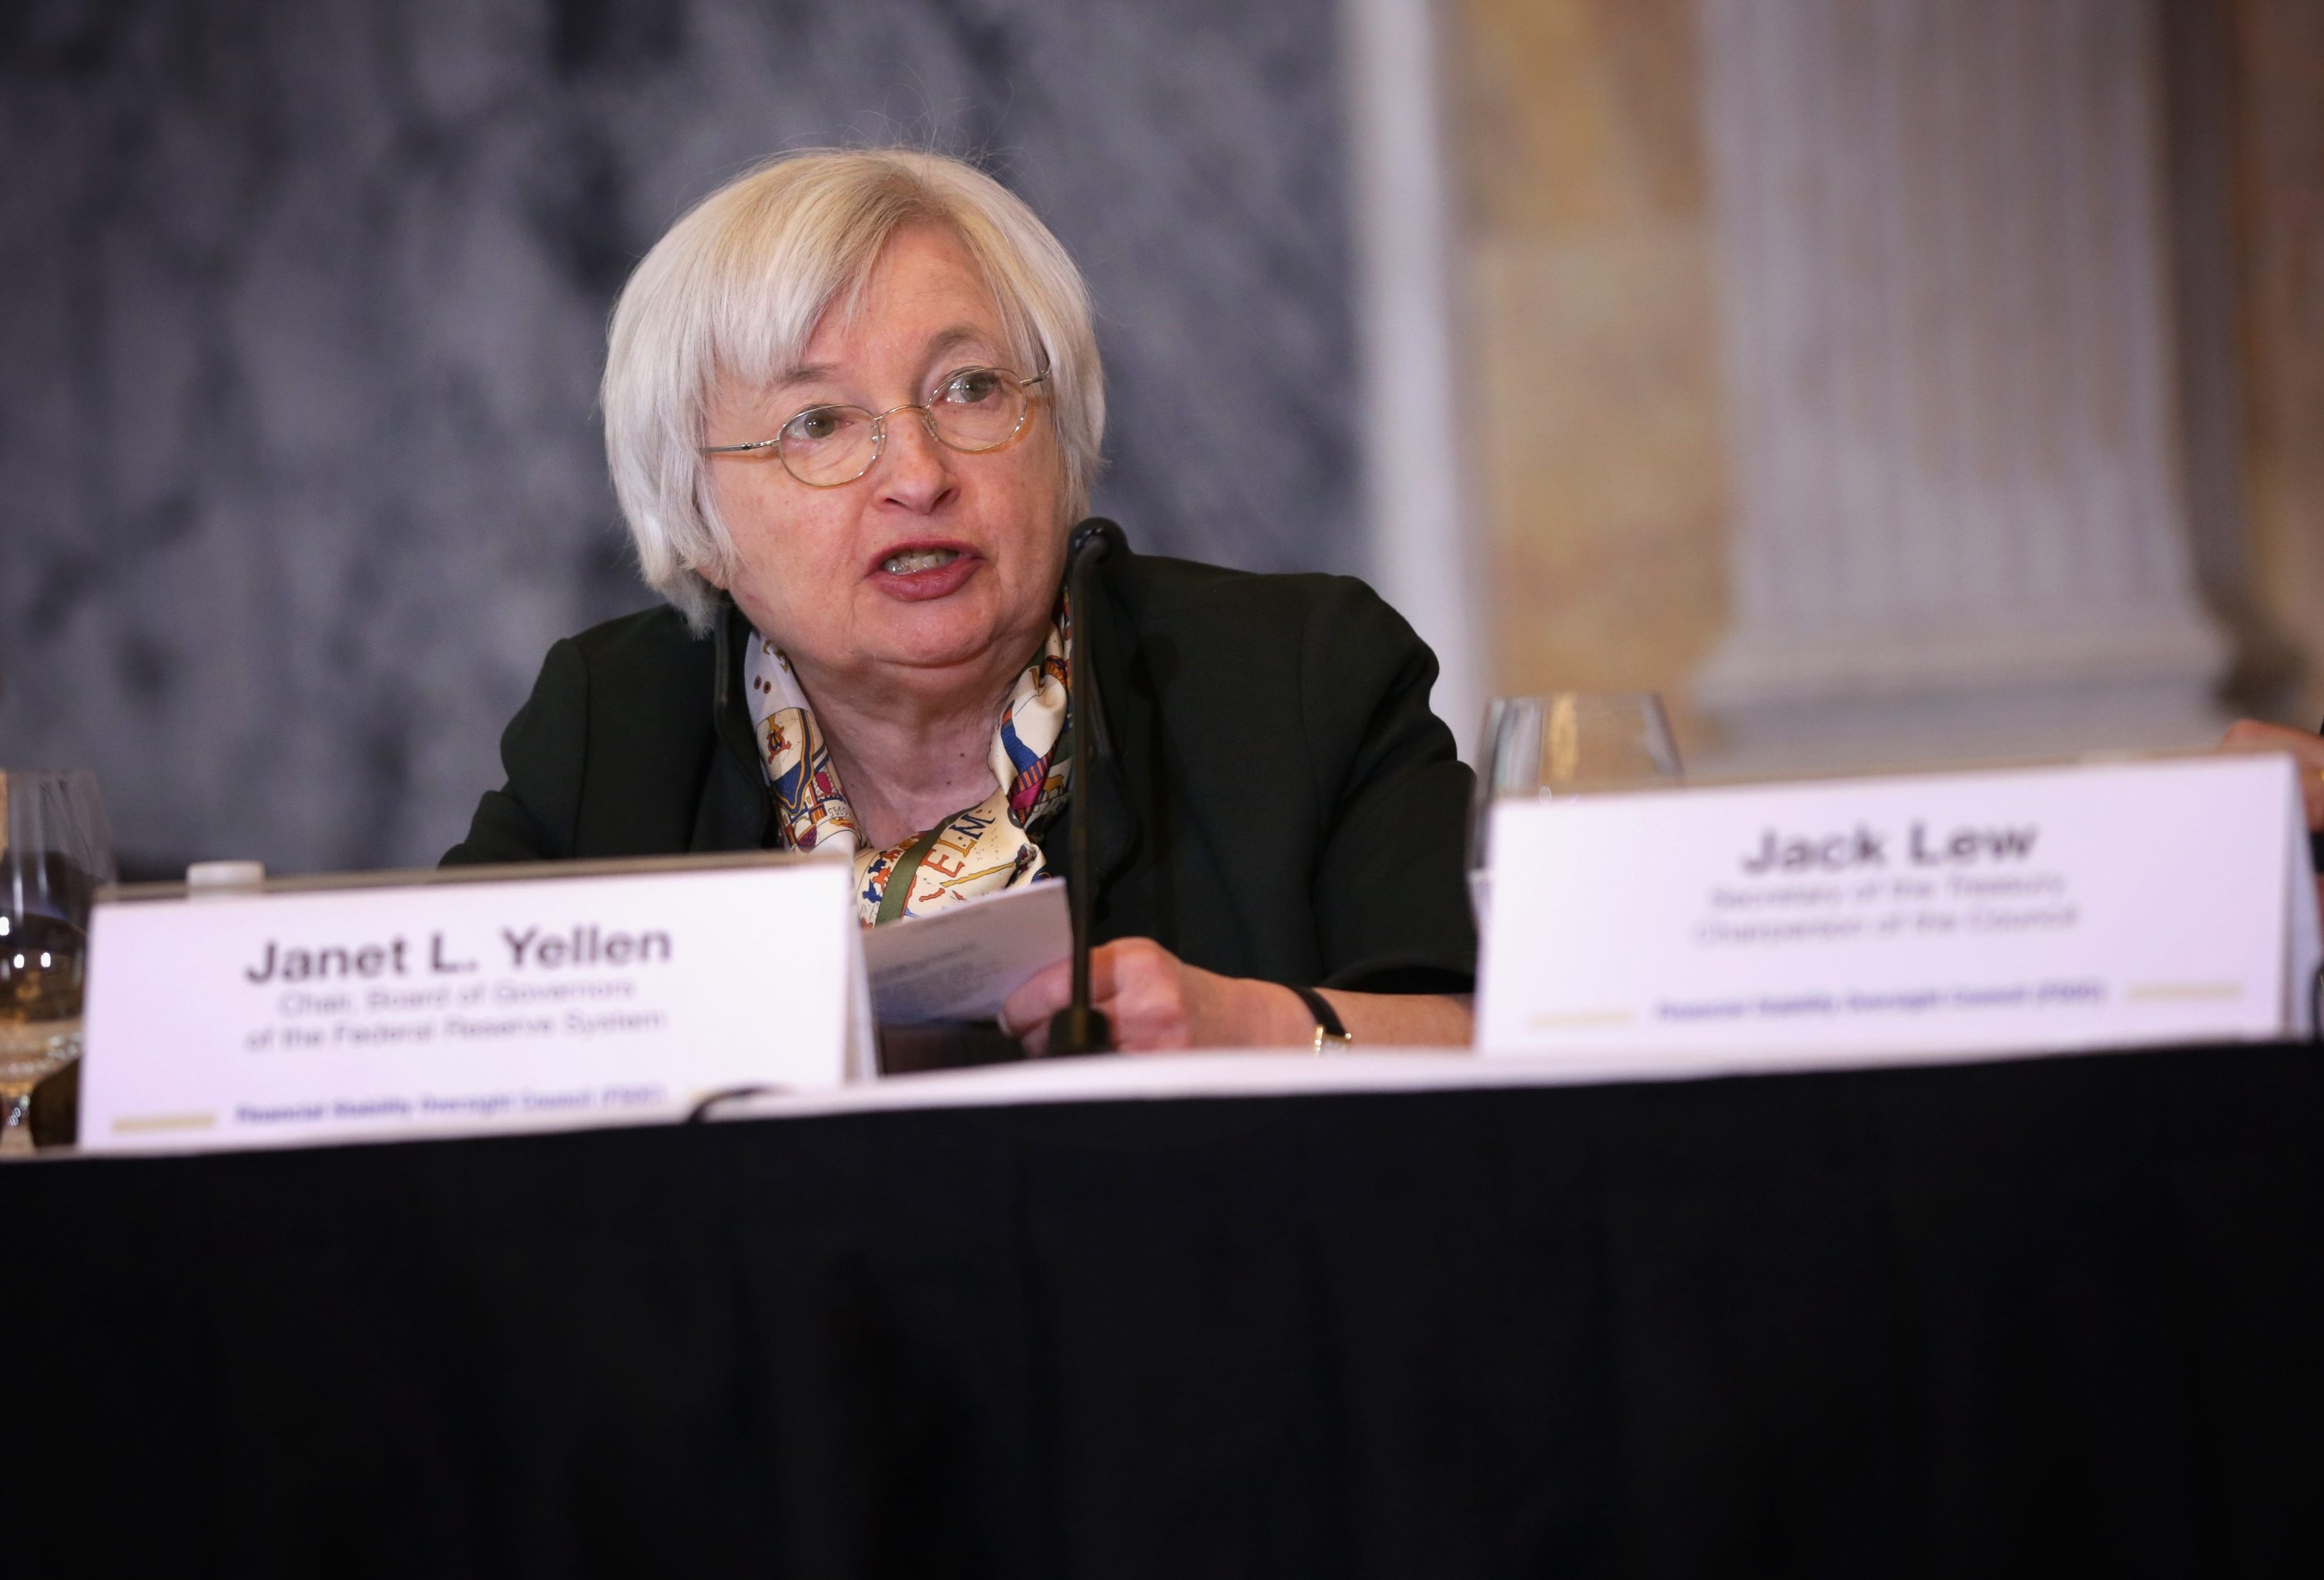 Since Janet L. Yellen was named Federal Reserve Board chairwoman, the Fed has gradually ended its bond-buying campaign while pointing steadily to mid-2015 as the most likely timing for a first rate increase.